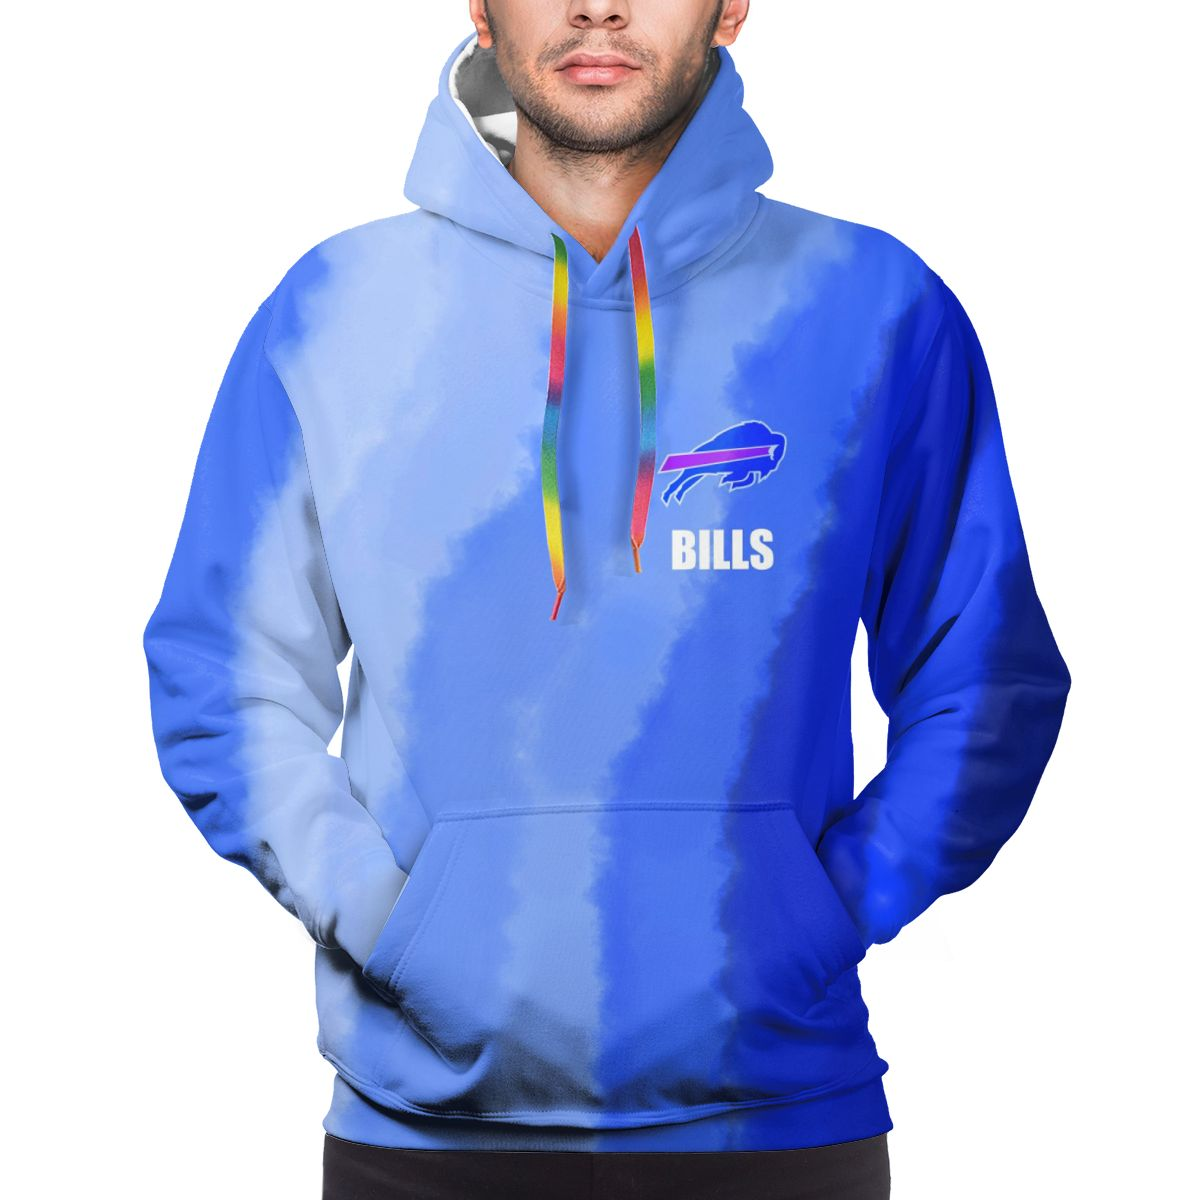 BILLS Logo Print Hoodies For Men Pullover Sweatshirt